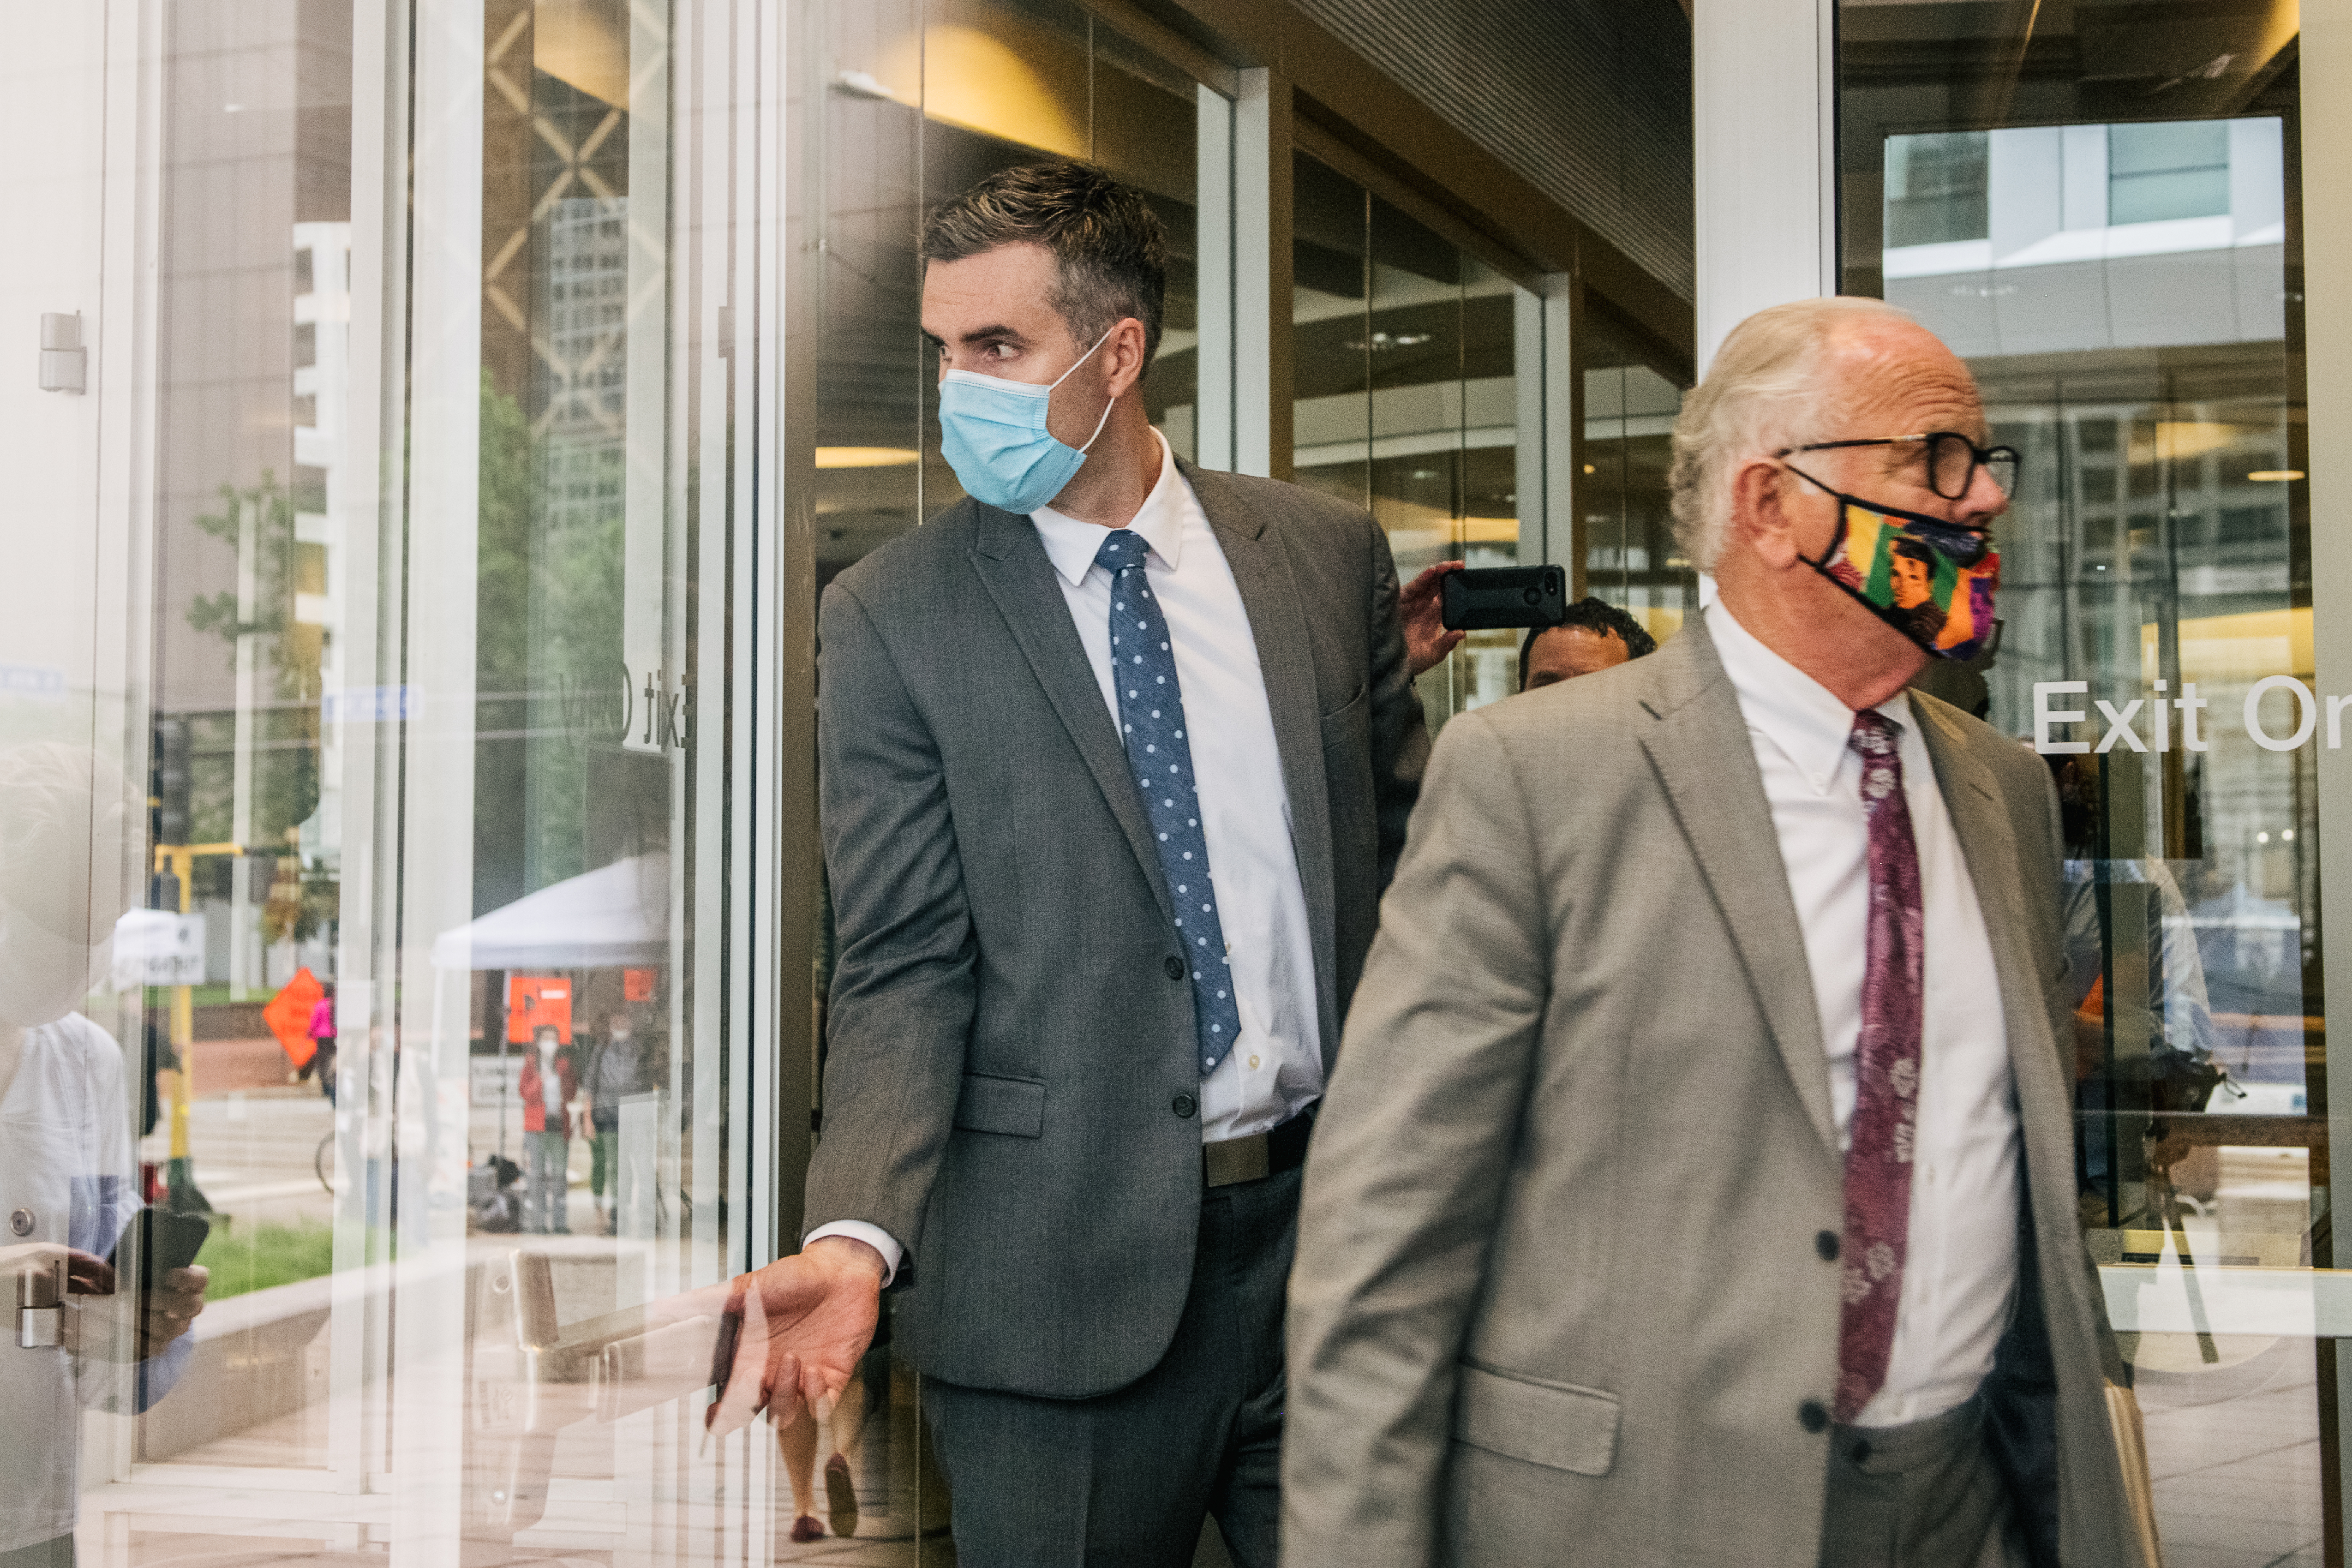 MINNEAPOLIS, MN - JUNE 29: Former Minneapolis Police officer Thomas Lane (L) and his attorney Earl Gray leave the Hennepin County Public Safety Facility after his second courthouse appearance on June 29, 2020 in Minneapolis, Minnesota. Lane is charged with aiding and abetting second-degree manslaughter in the death of George Floyd on May 25. (Photo by Brandon Bell/Getty Images)